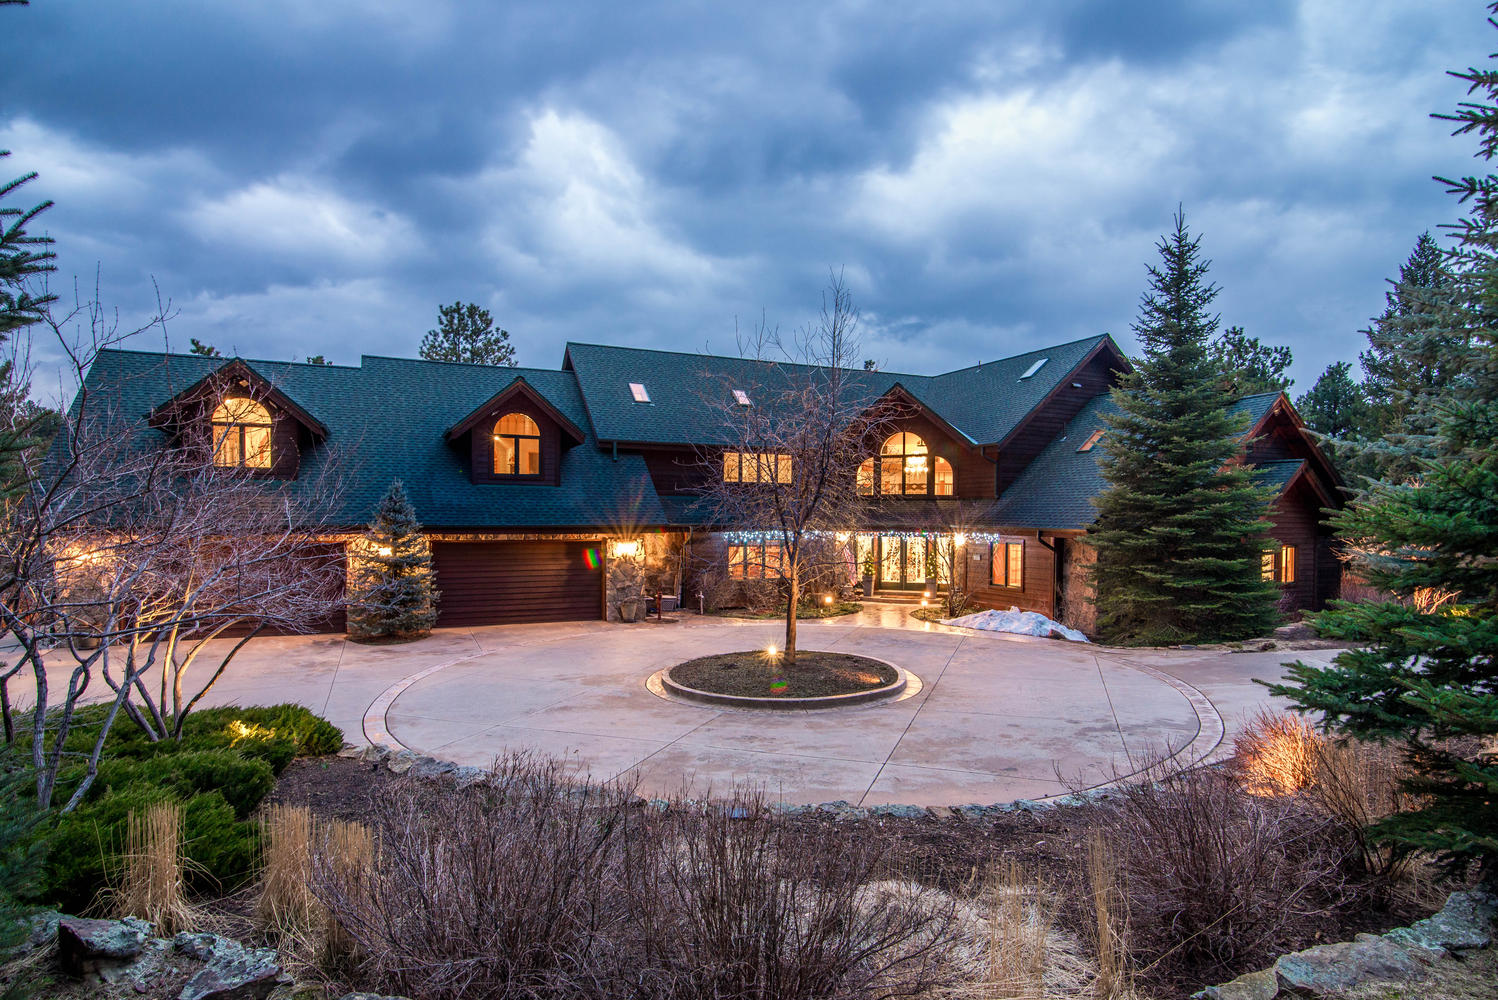 Single Family Home for Sale at Majestic Estate Nestled on 42.42 Acres 28775 Cragmont Drive Evergreen, Colorado, 80439 United States